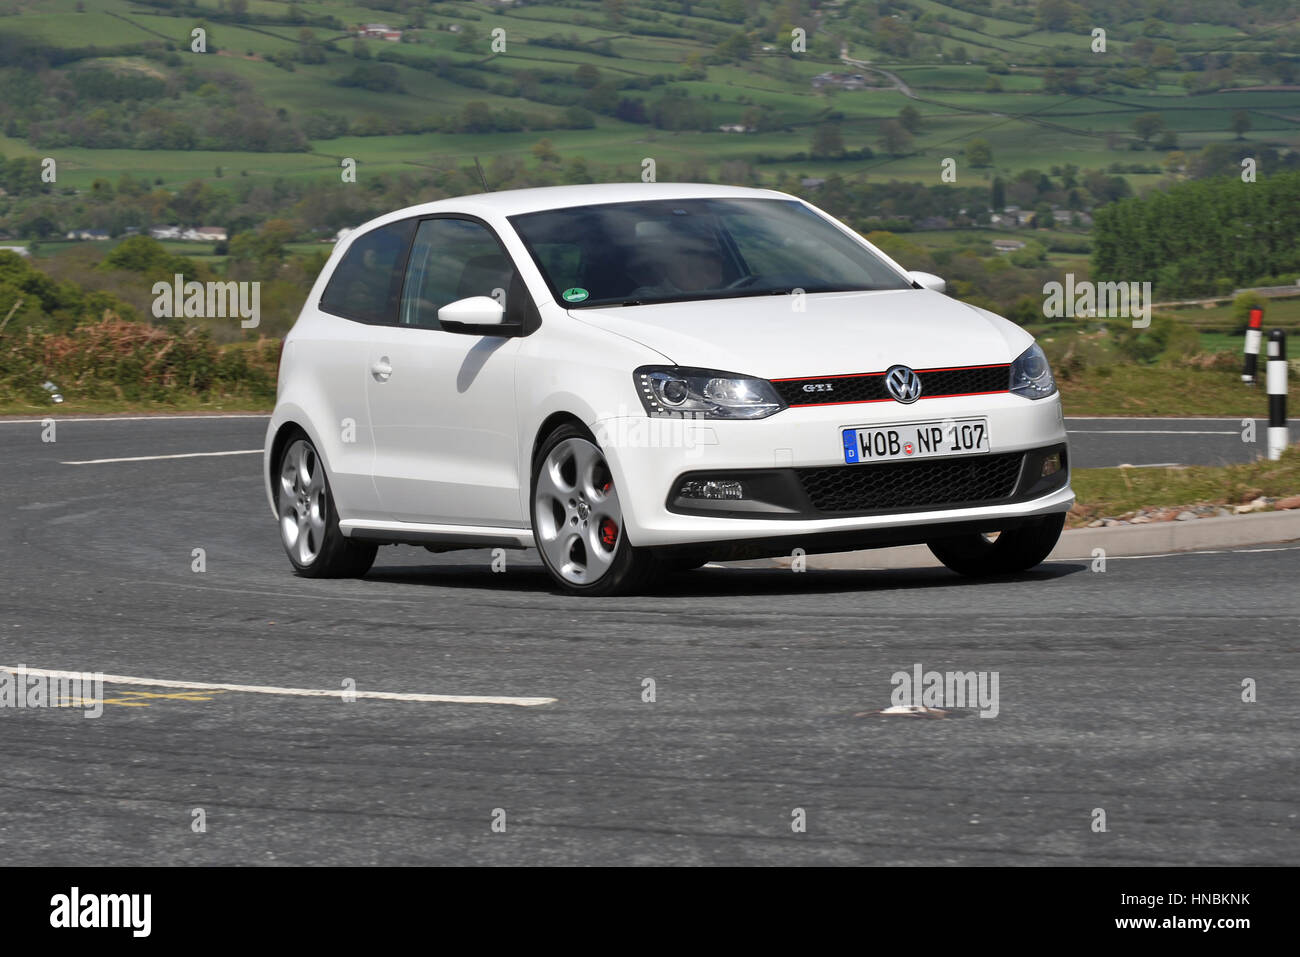 vw polo gti stock photos vw polo gti stock images alamy. Black Bedroom Furniture Sets. Home Design Ideas